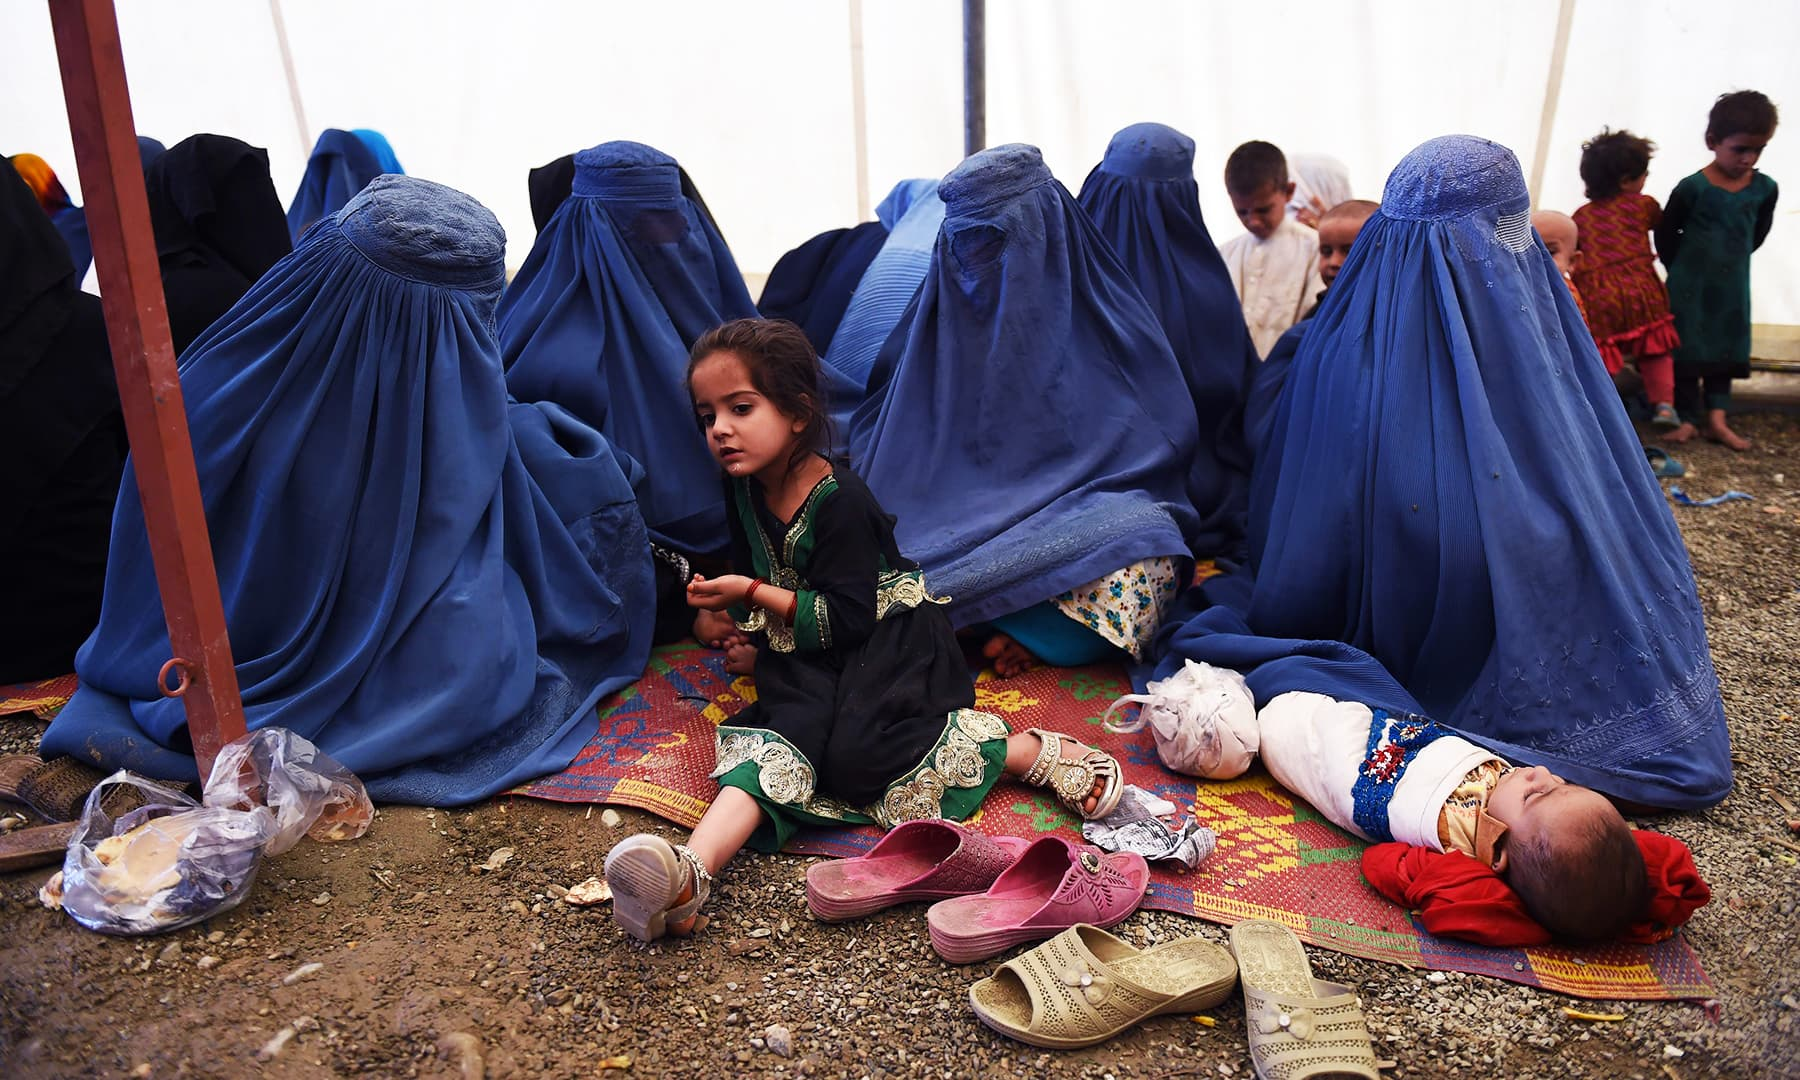 Afghan refugee women sit with their children after returning to Afghanistan from Pakistan, at the UNHCR camp on the outskirts of Kabul. — AFP